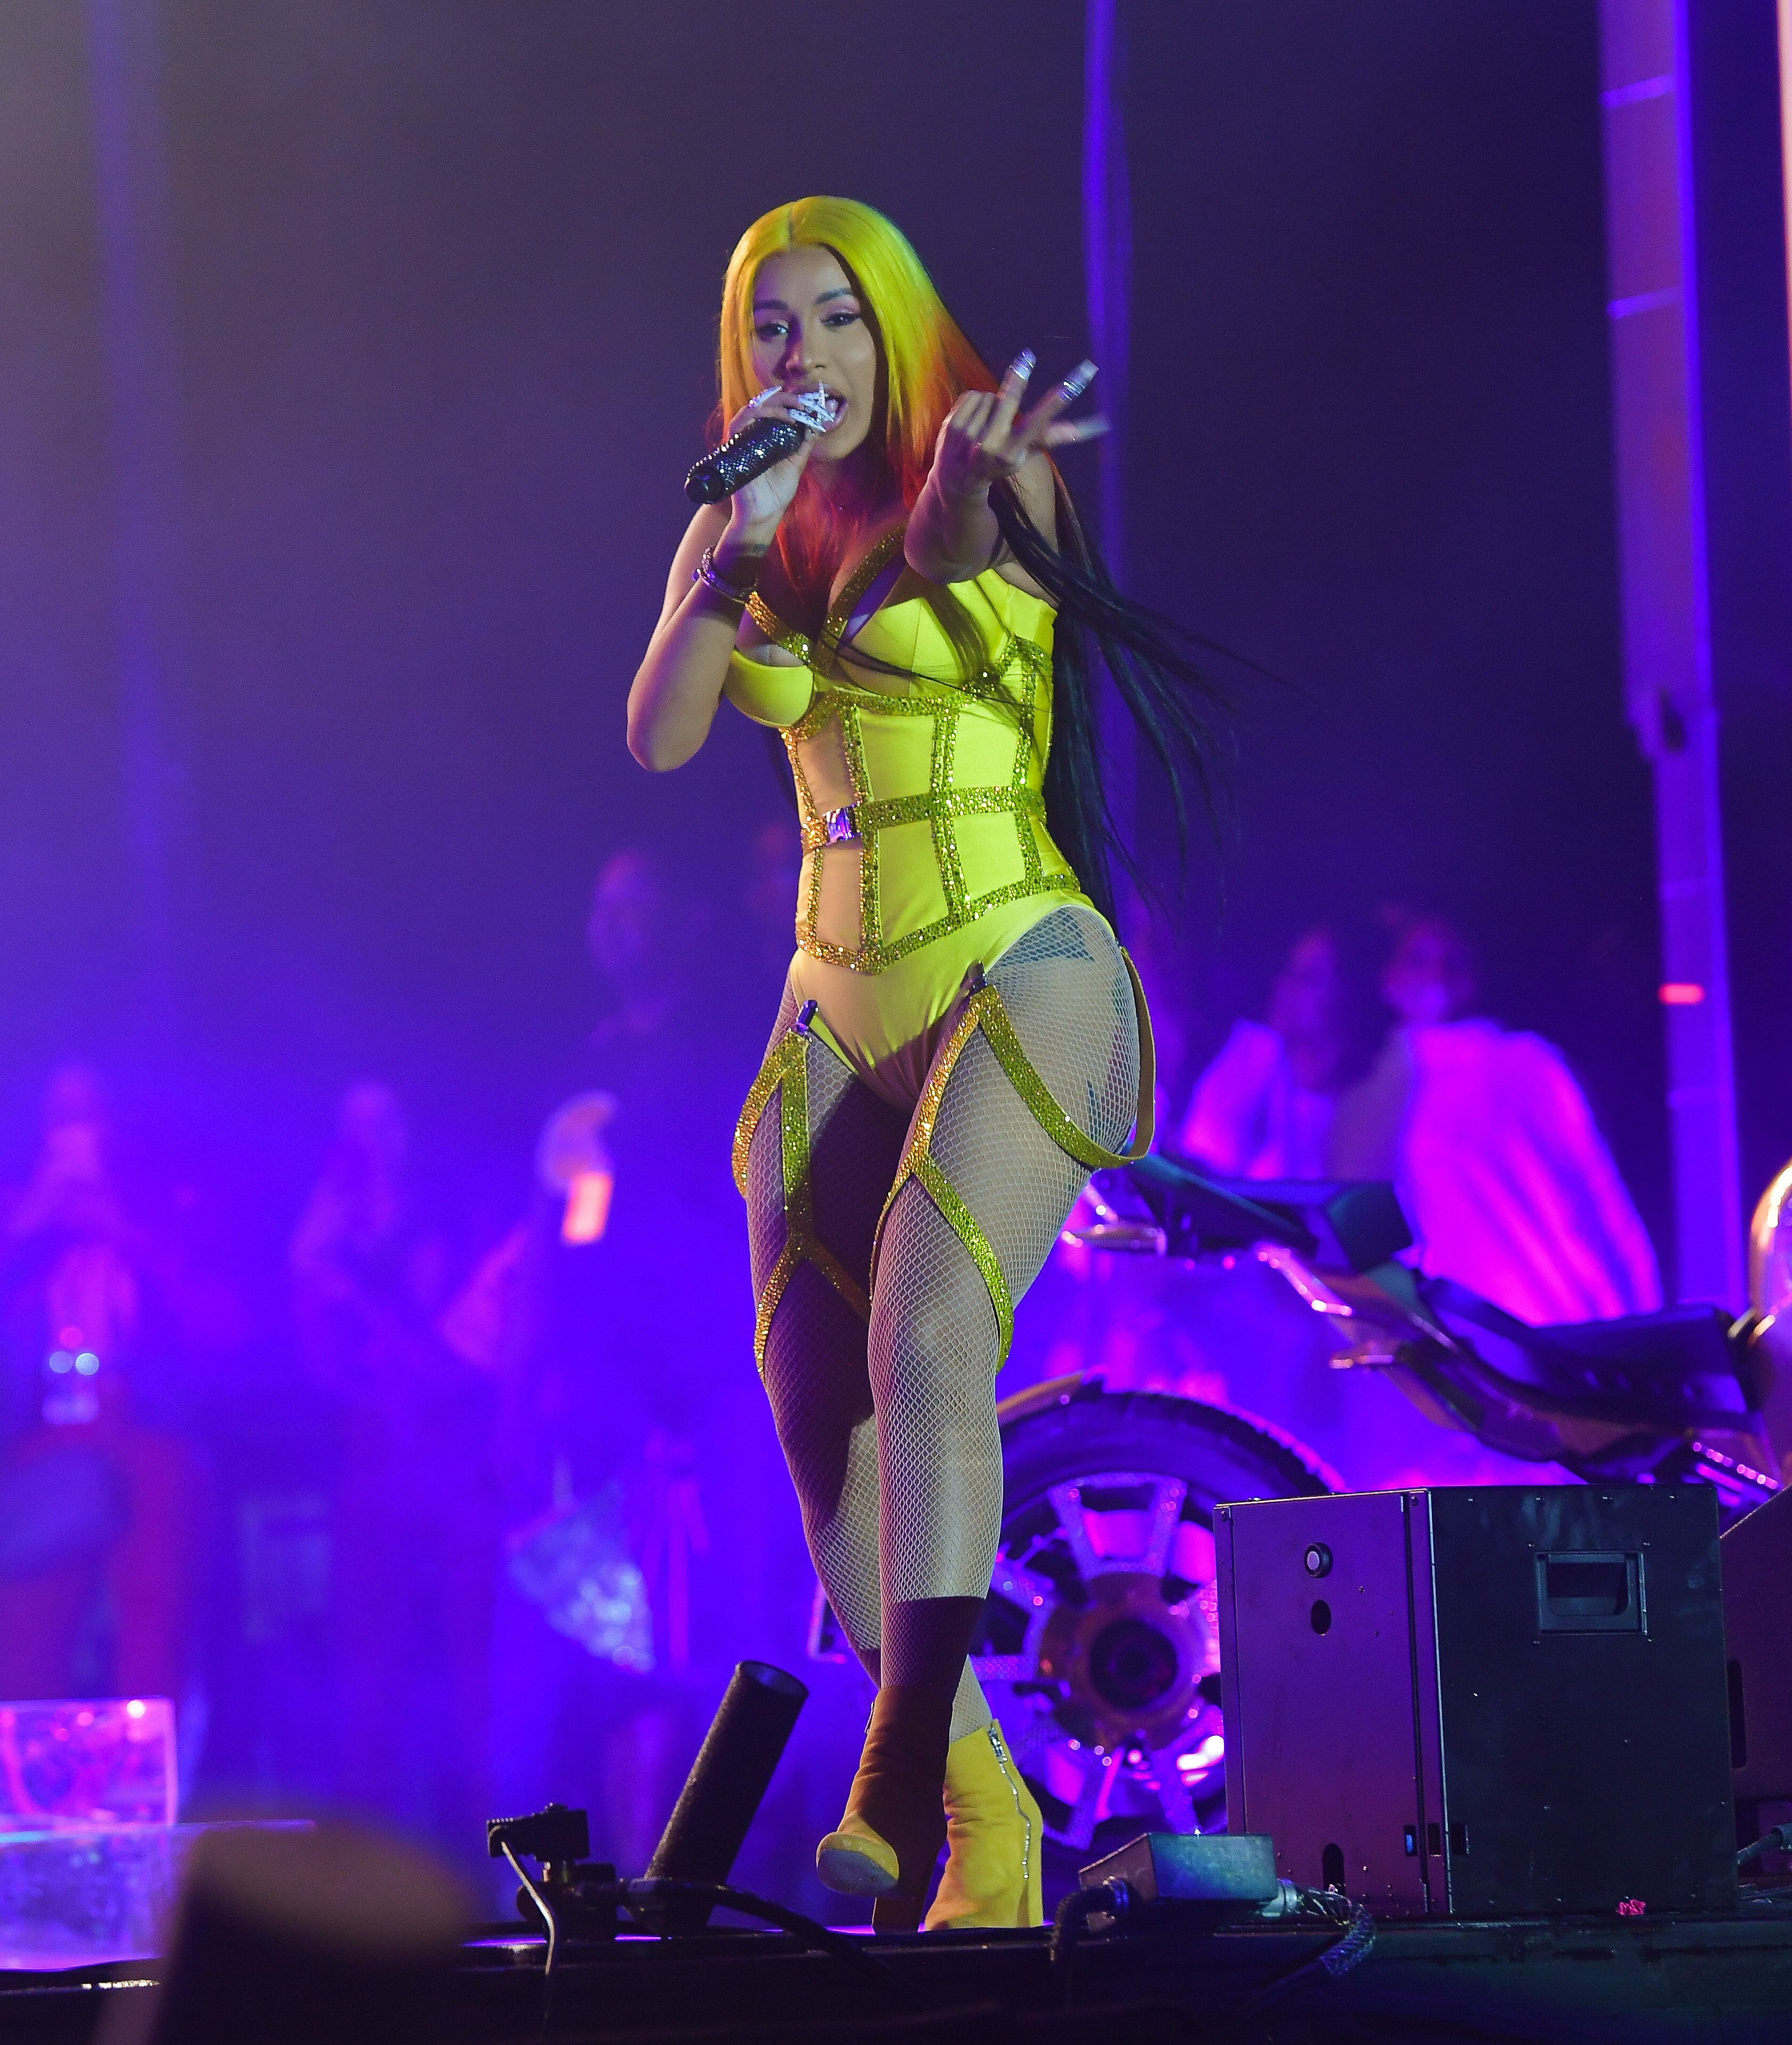 Cardi B performs at Vewtopia Music Festival 2020  at Miami Gardens Park on February 1, 2020 | Photo: Getty Images